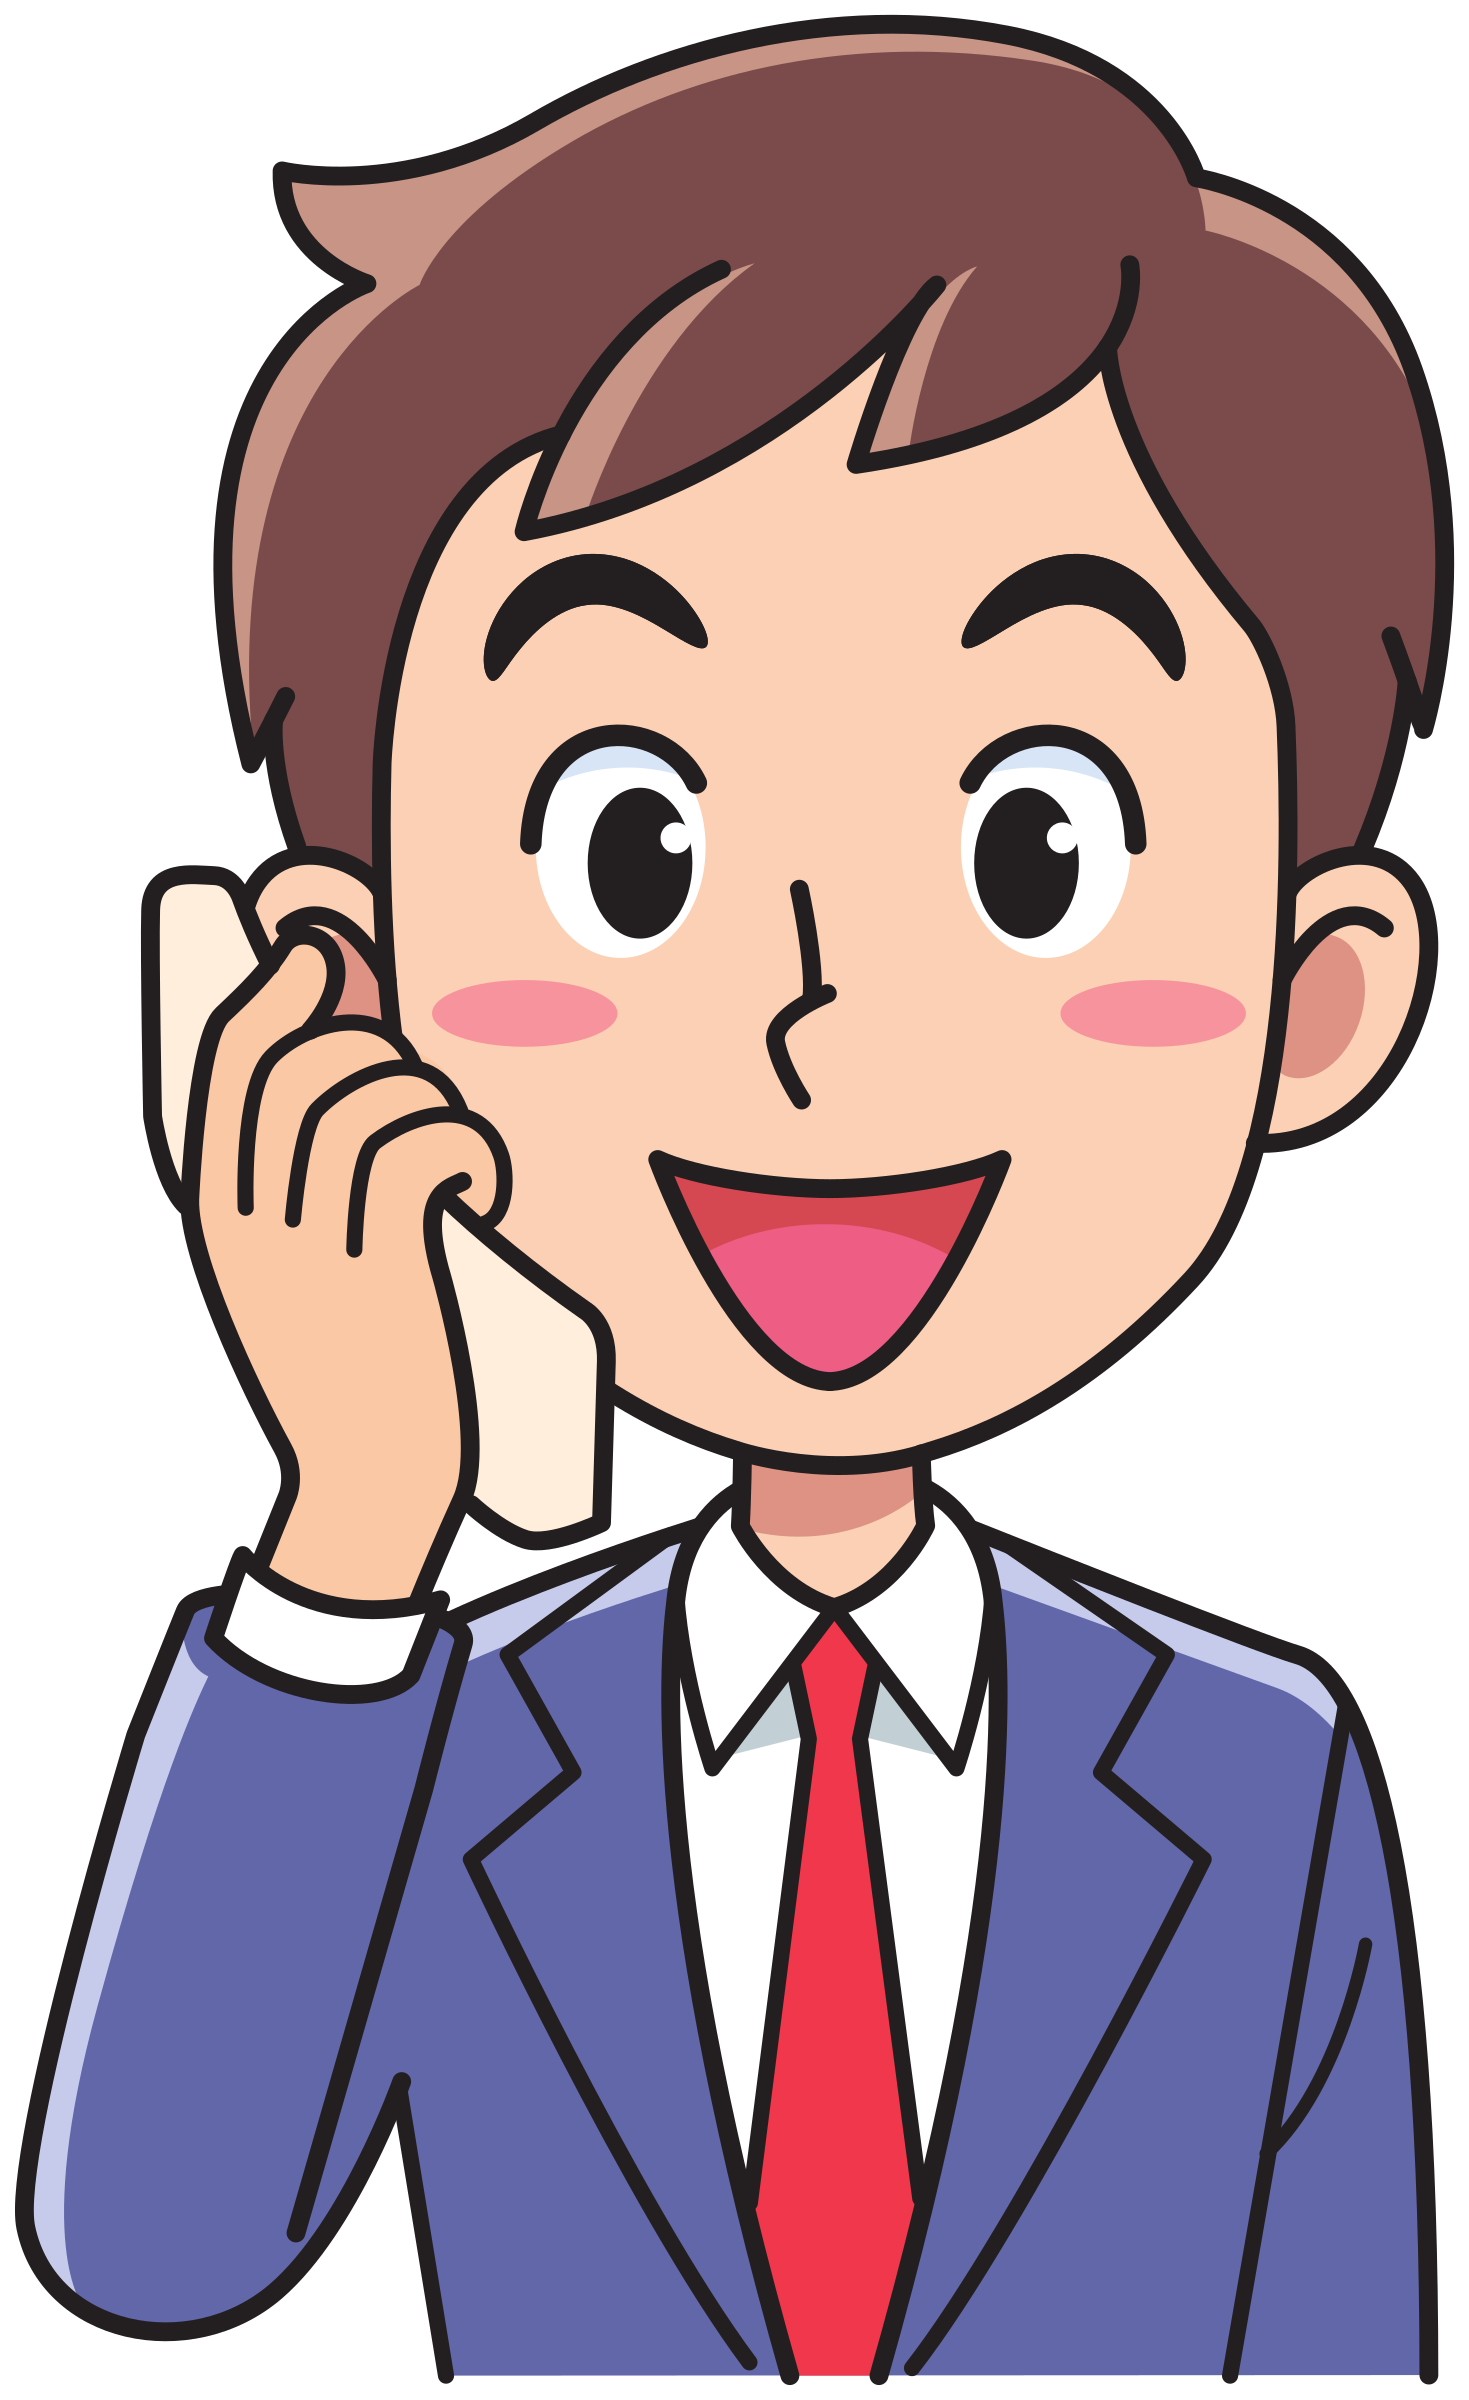 Person on phone the. Clipart telephone man